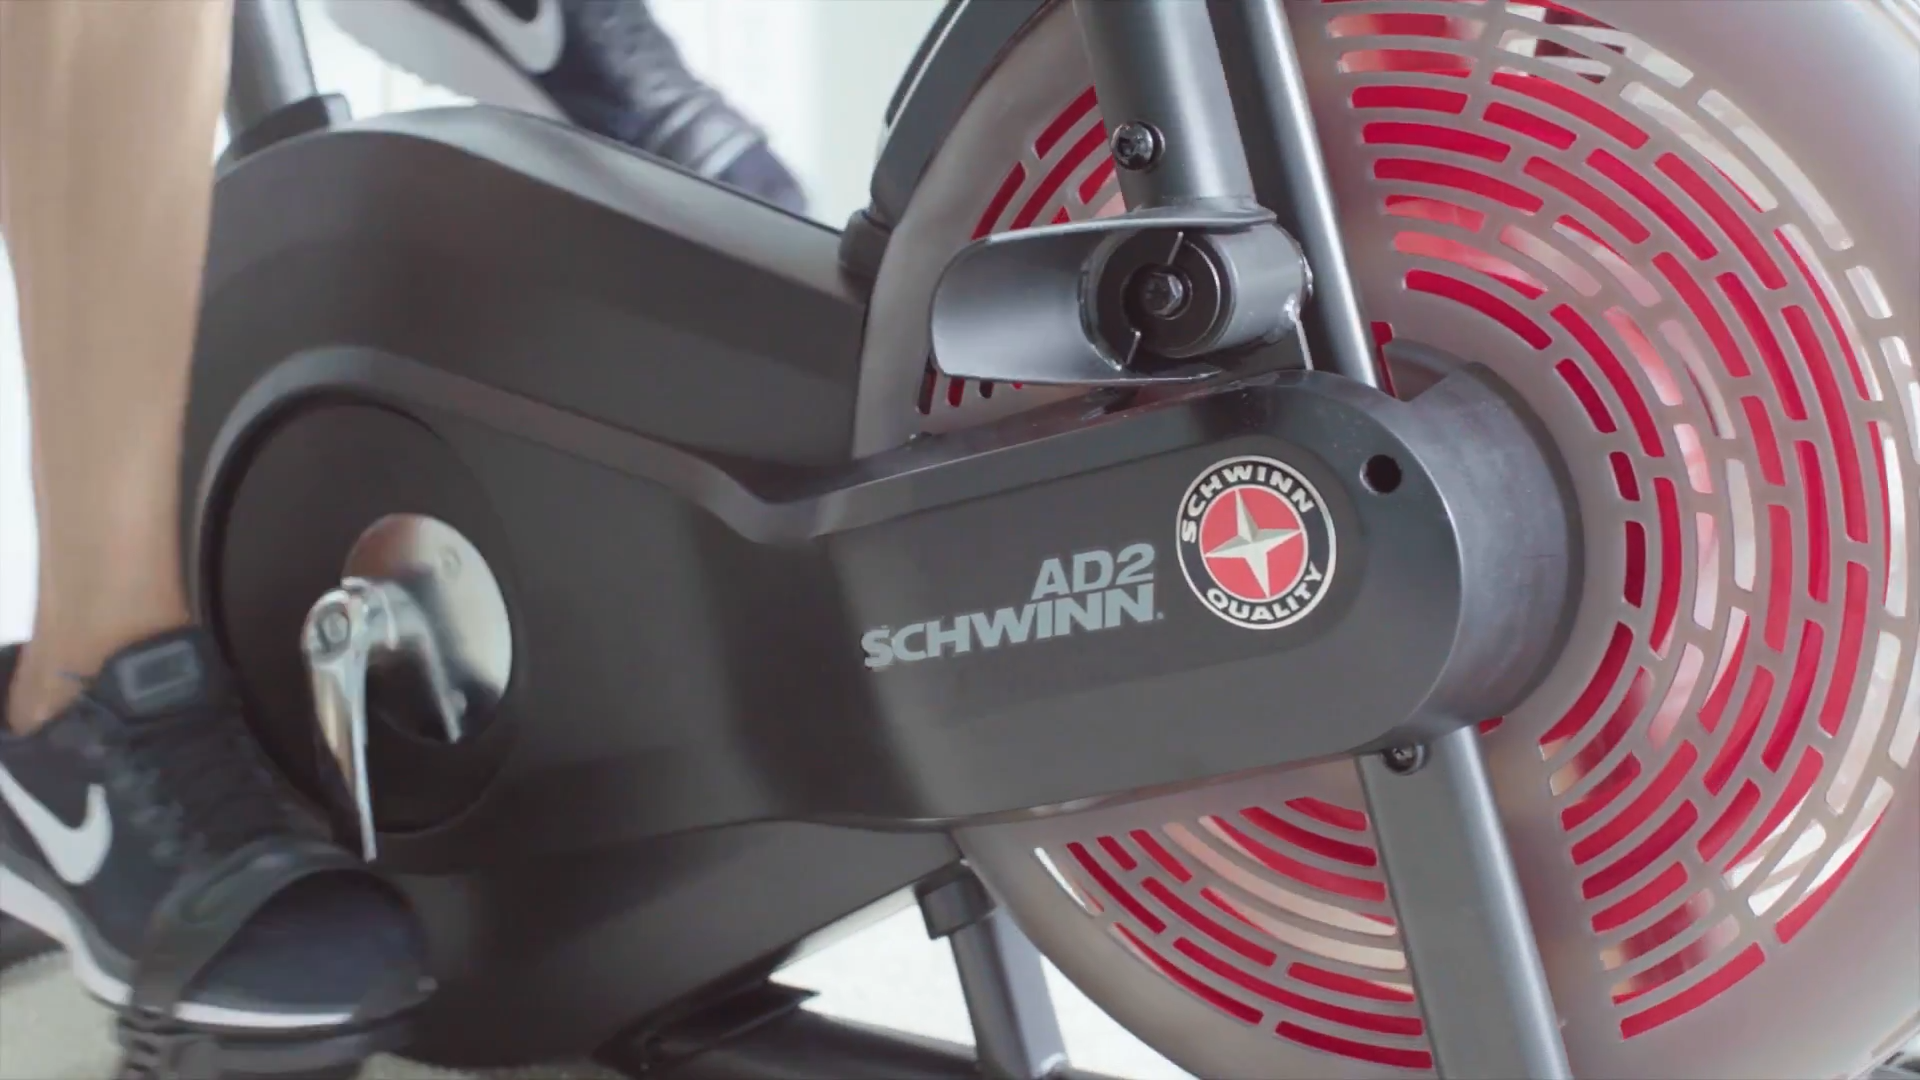 schwinn bike size, stationary fan bikes, stationary fan